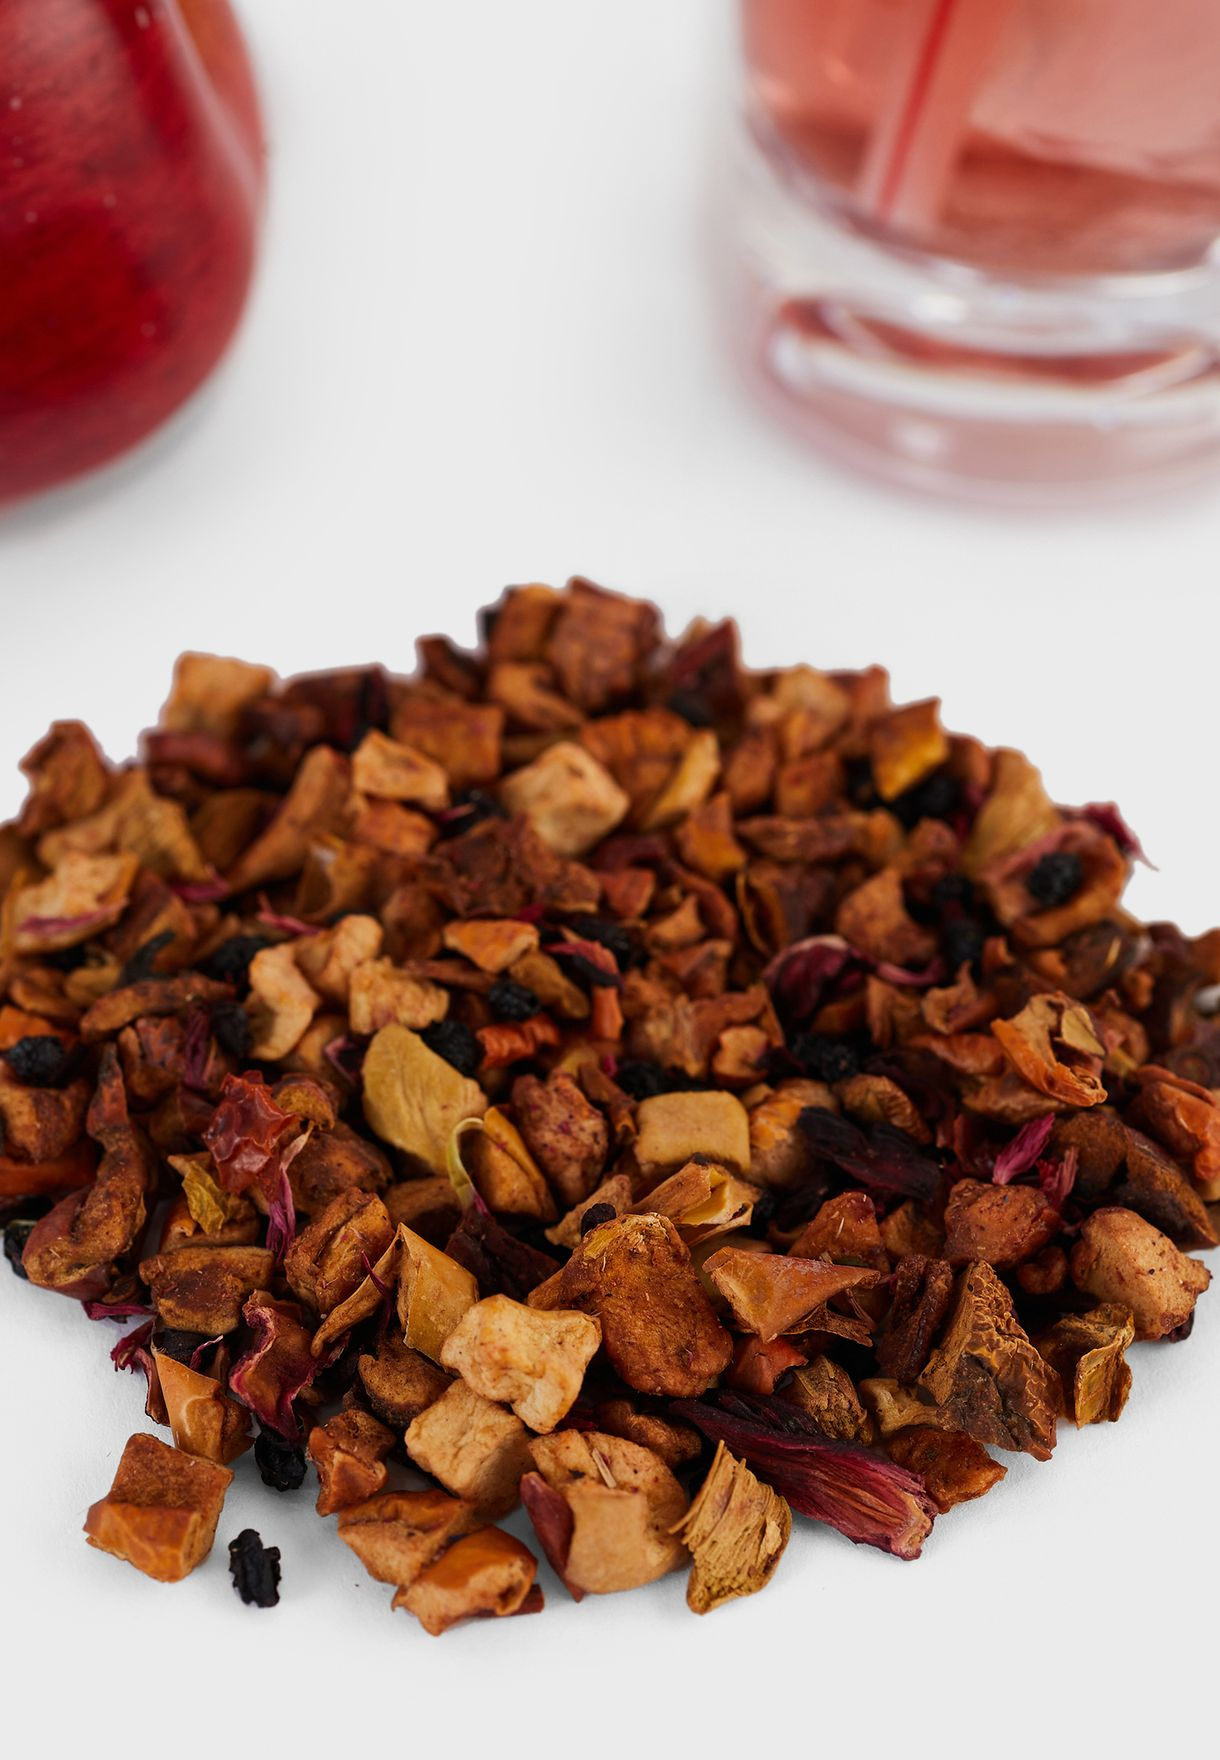 Fruit Tea Blend - Rhubarb